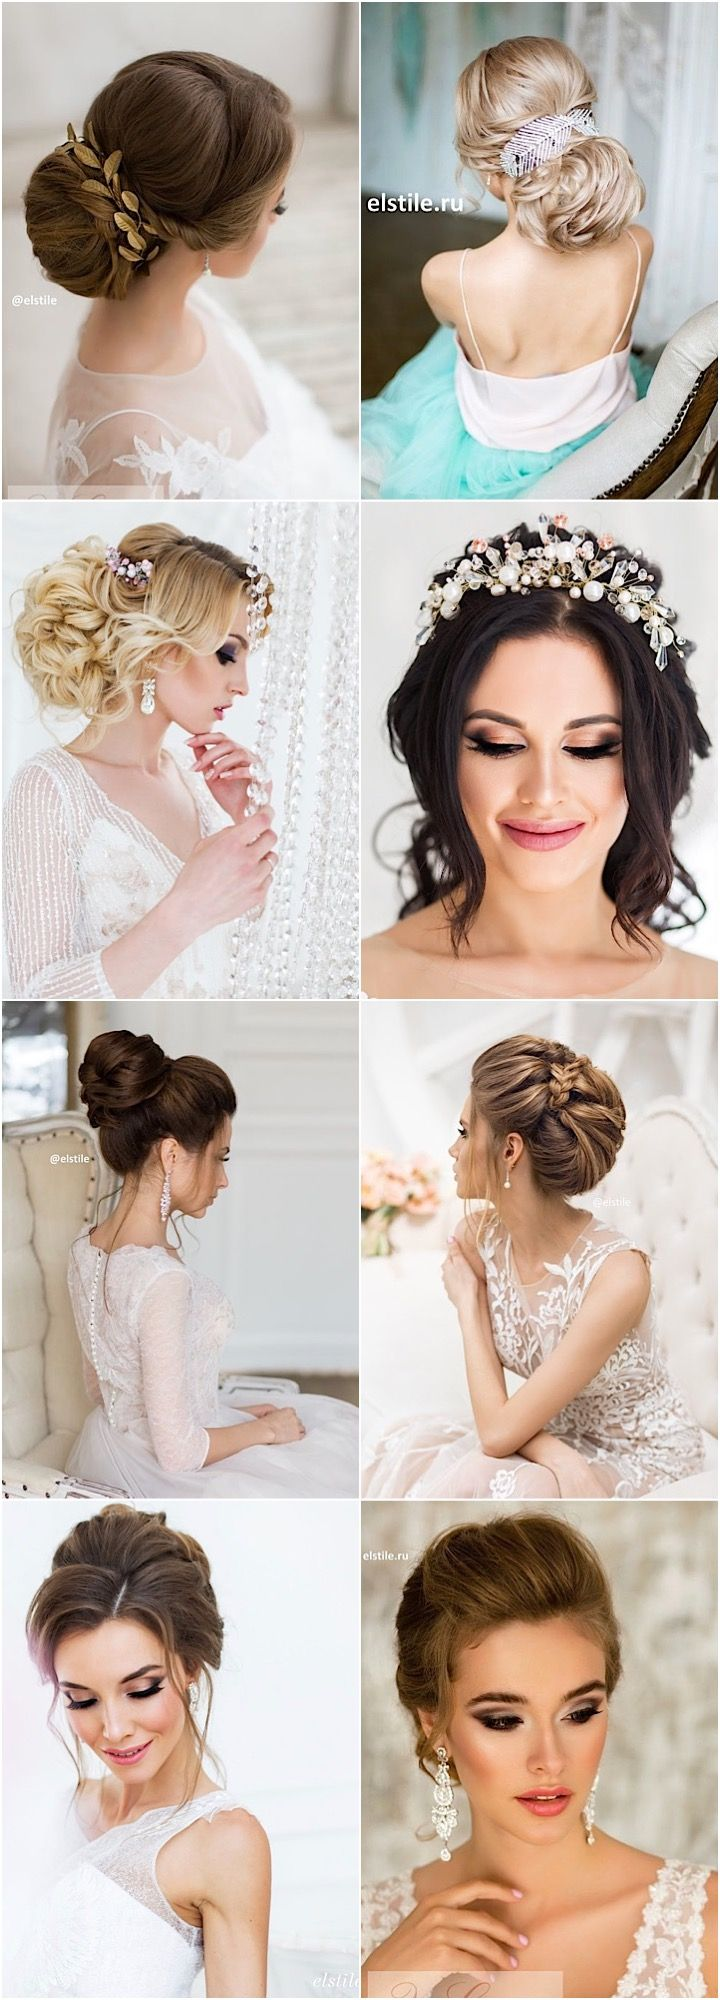 Unique Wedding Updo Hairstyles Component - The Wedding Ideas ...